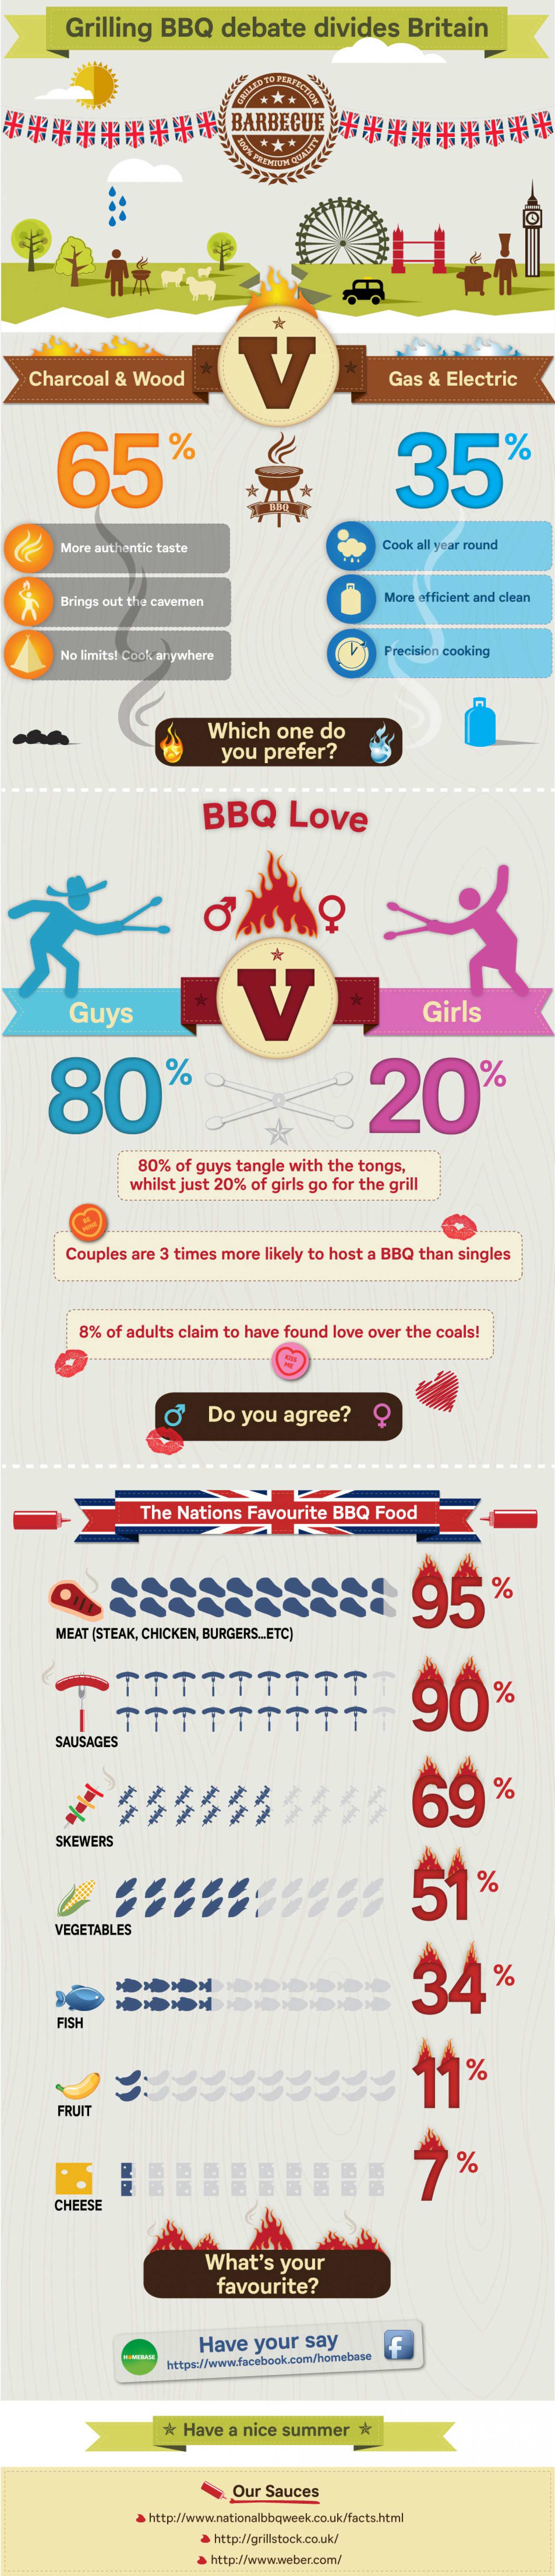 Grilling BBQ Debate Divides Britain Infographic